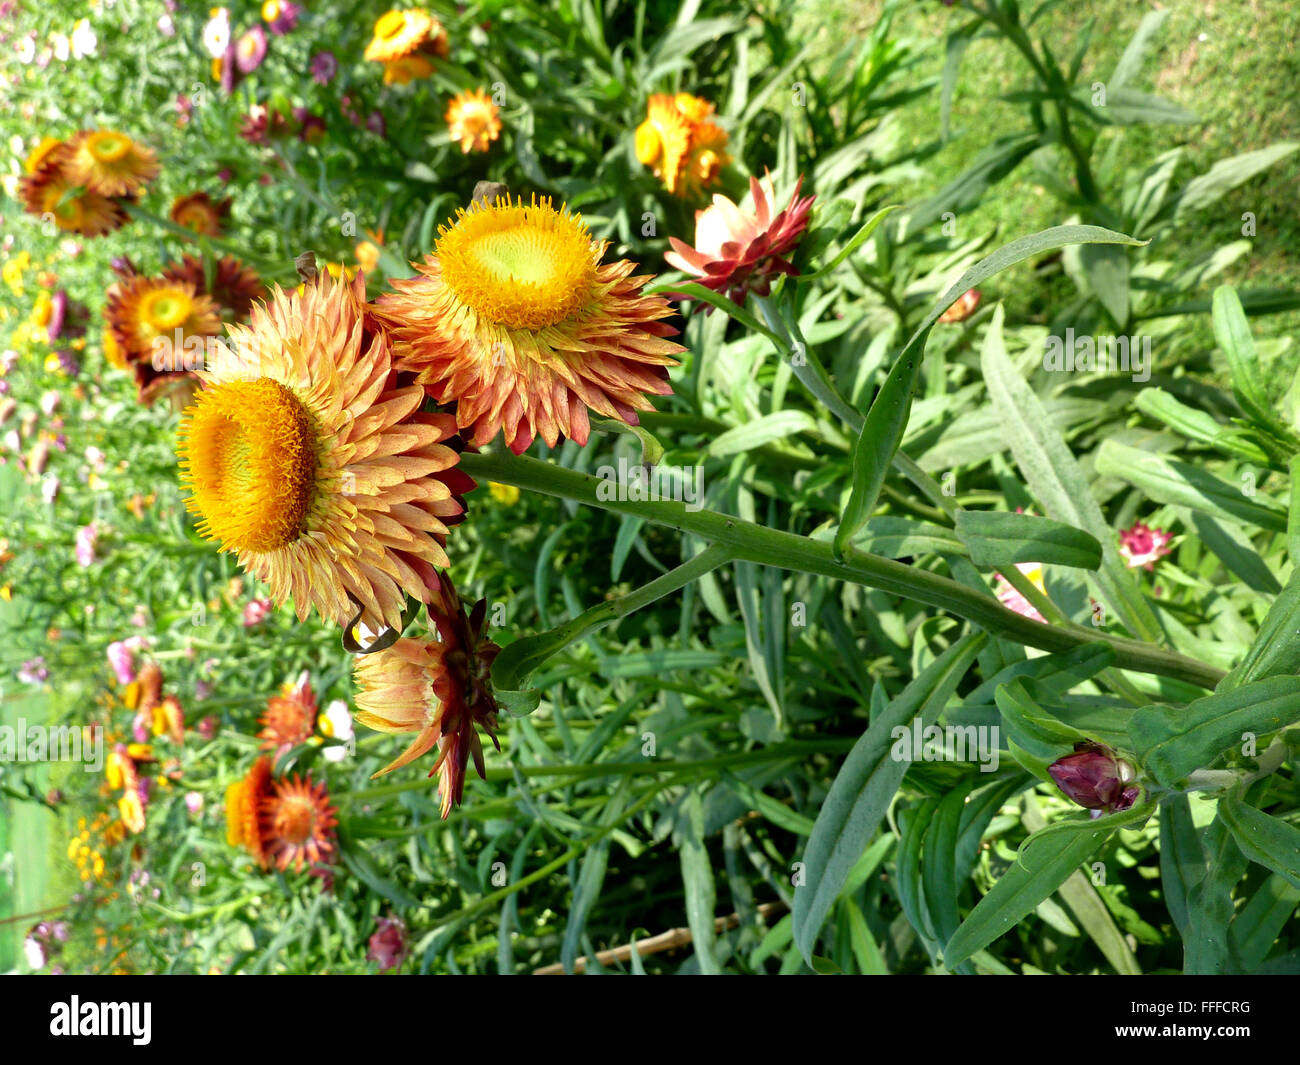 Helichrysum bracteatum straw flower ornamental herb with hairy helichrysum bracteatum straw flower ornamental herb with hairy stems lanceolate leaves and papery orange yellow flower head mightylinksfo